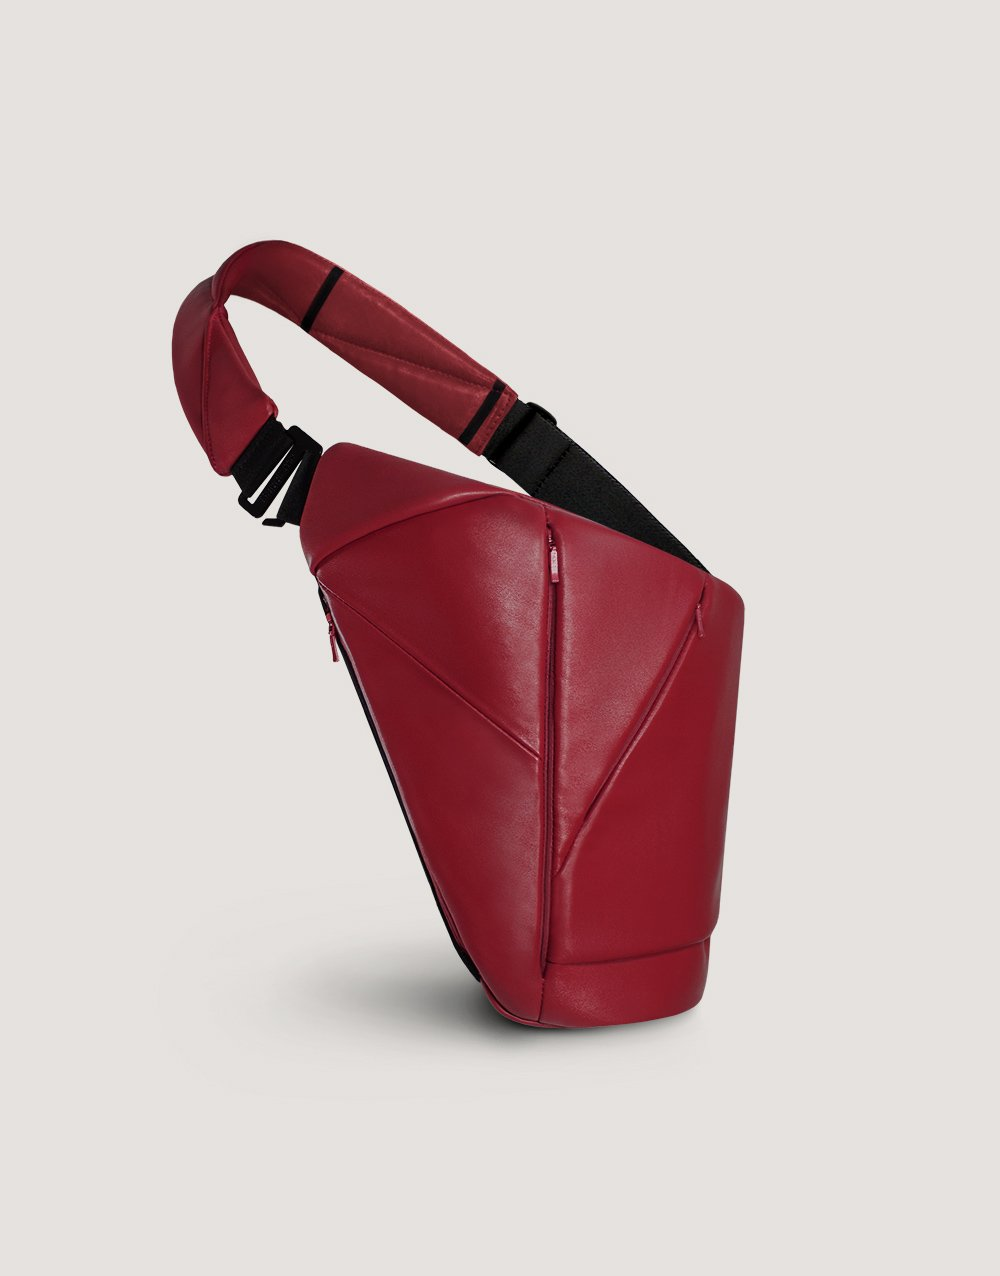 Red leather crossbody bag with many pockets by Baggizmo